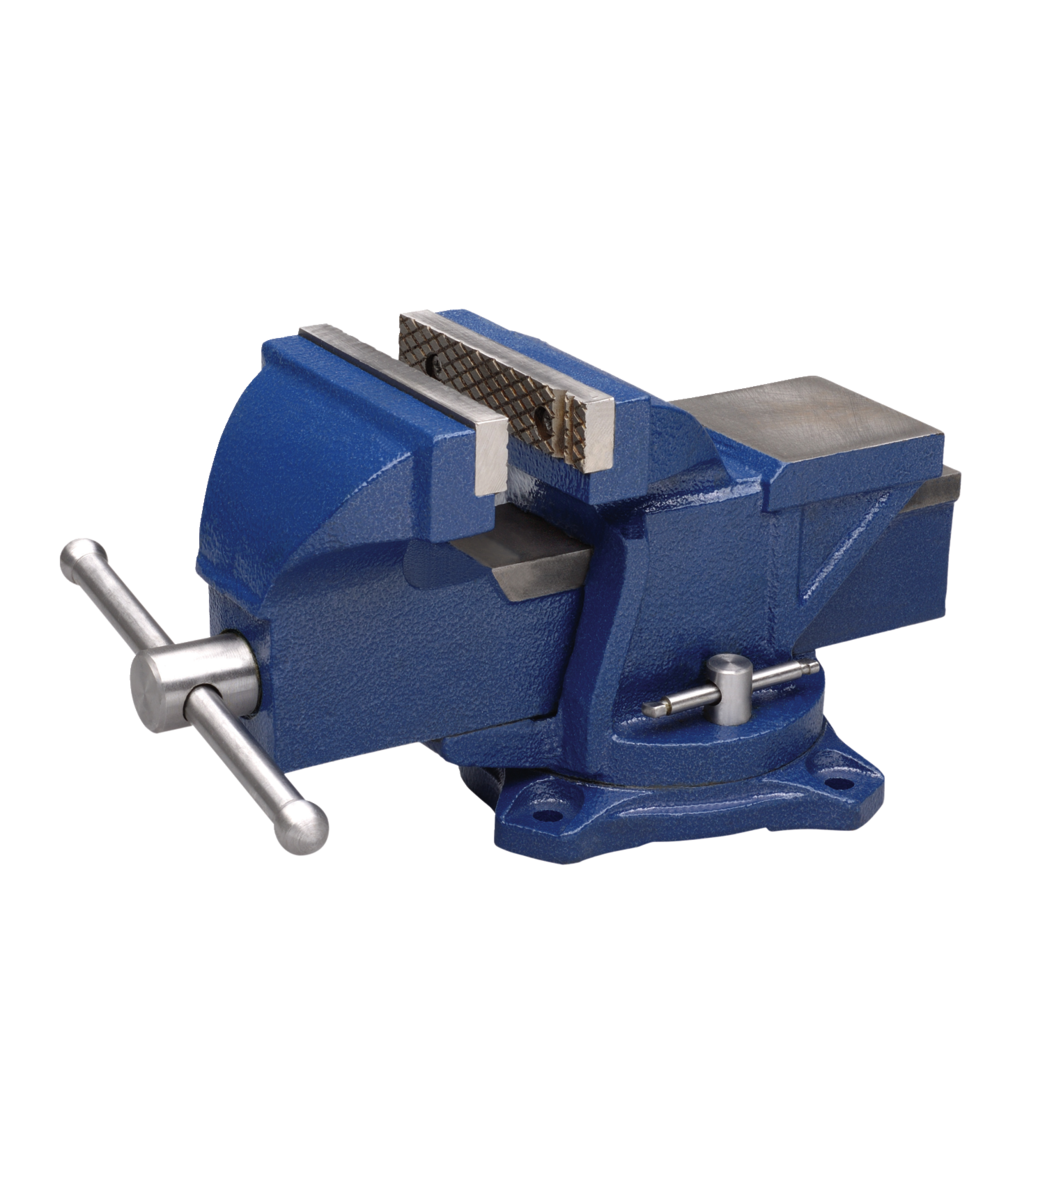 """Manual: General Purpose 4"""" Jaw Bench Vise with Swivel Base"""